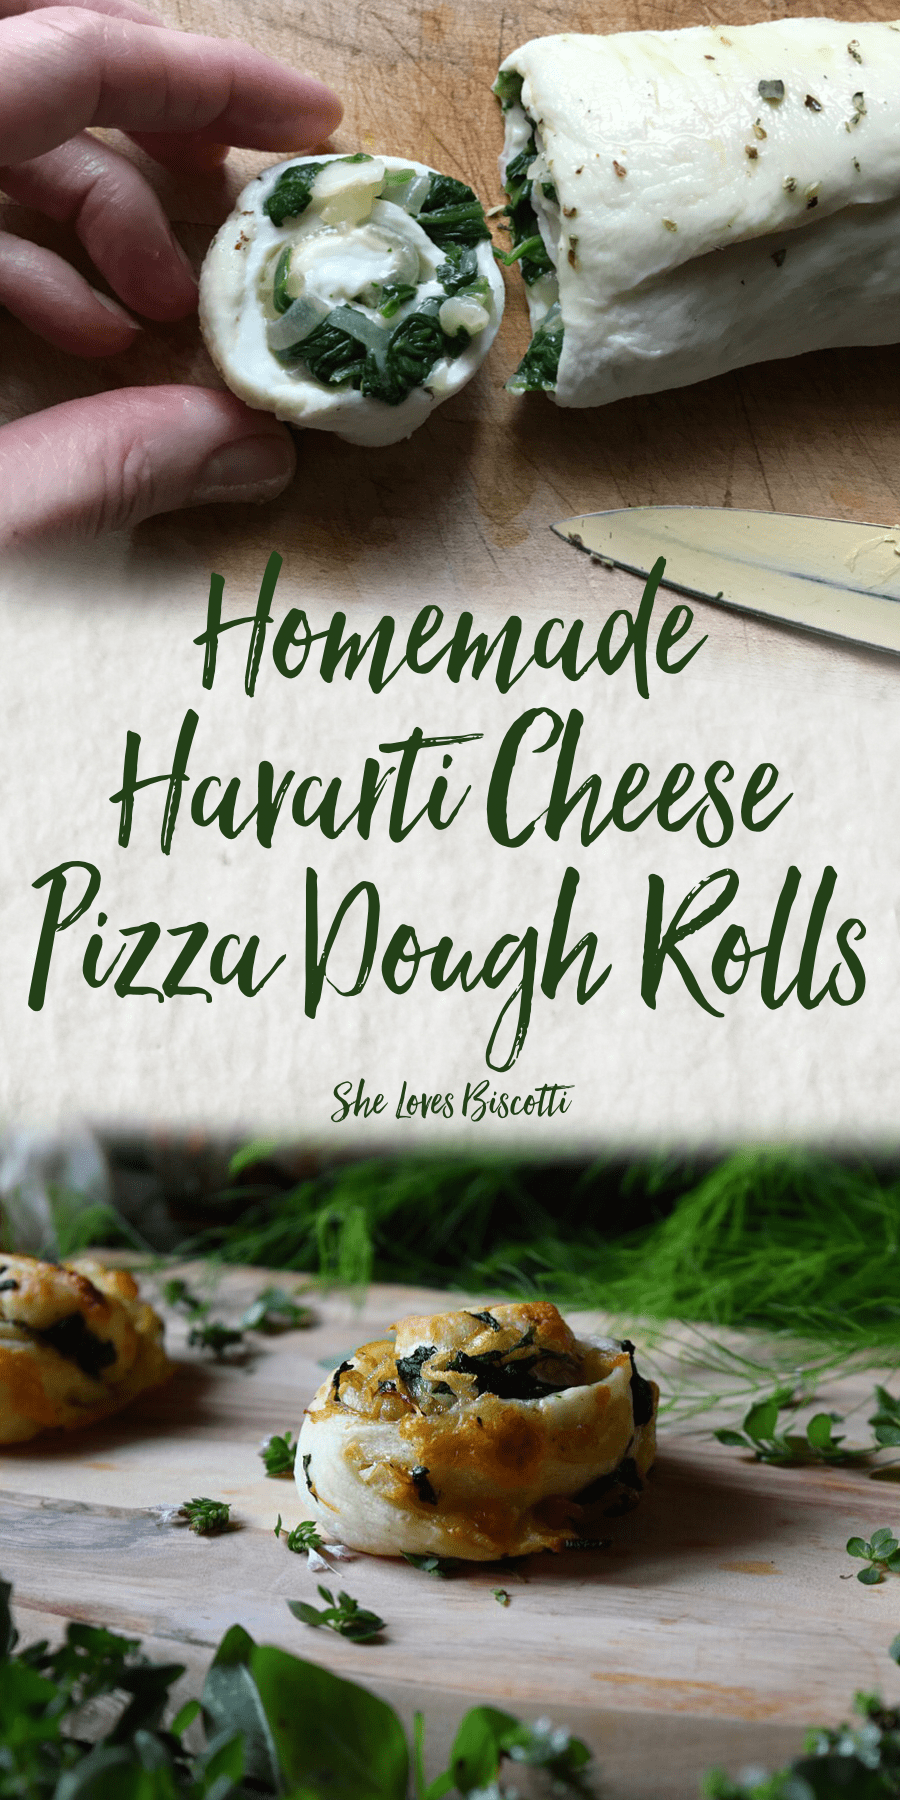 Homemade Havarti Cheese Pizza Dough Rolls